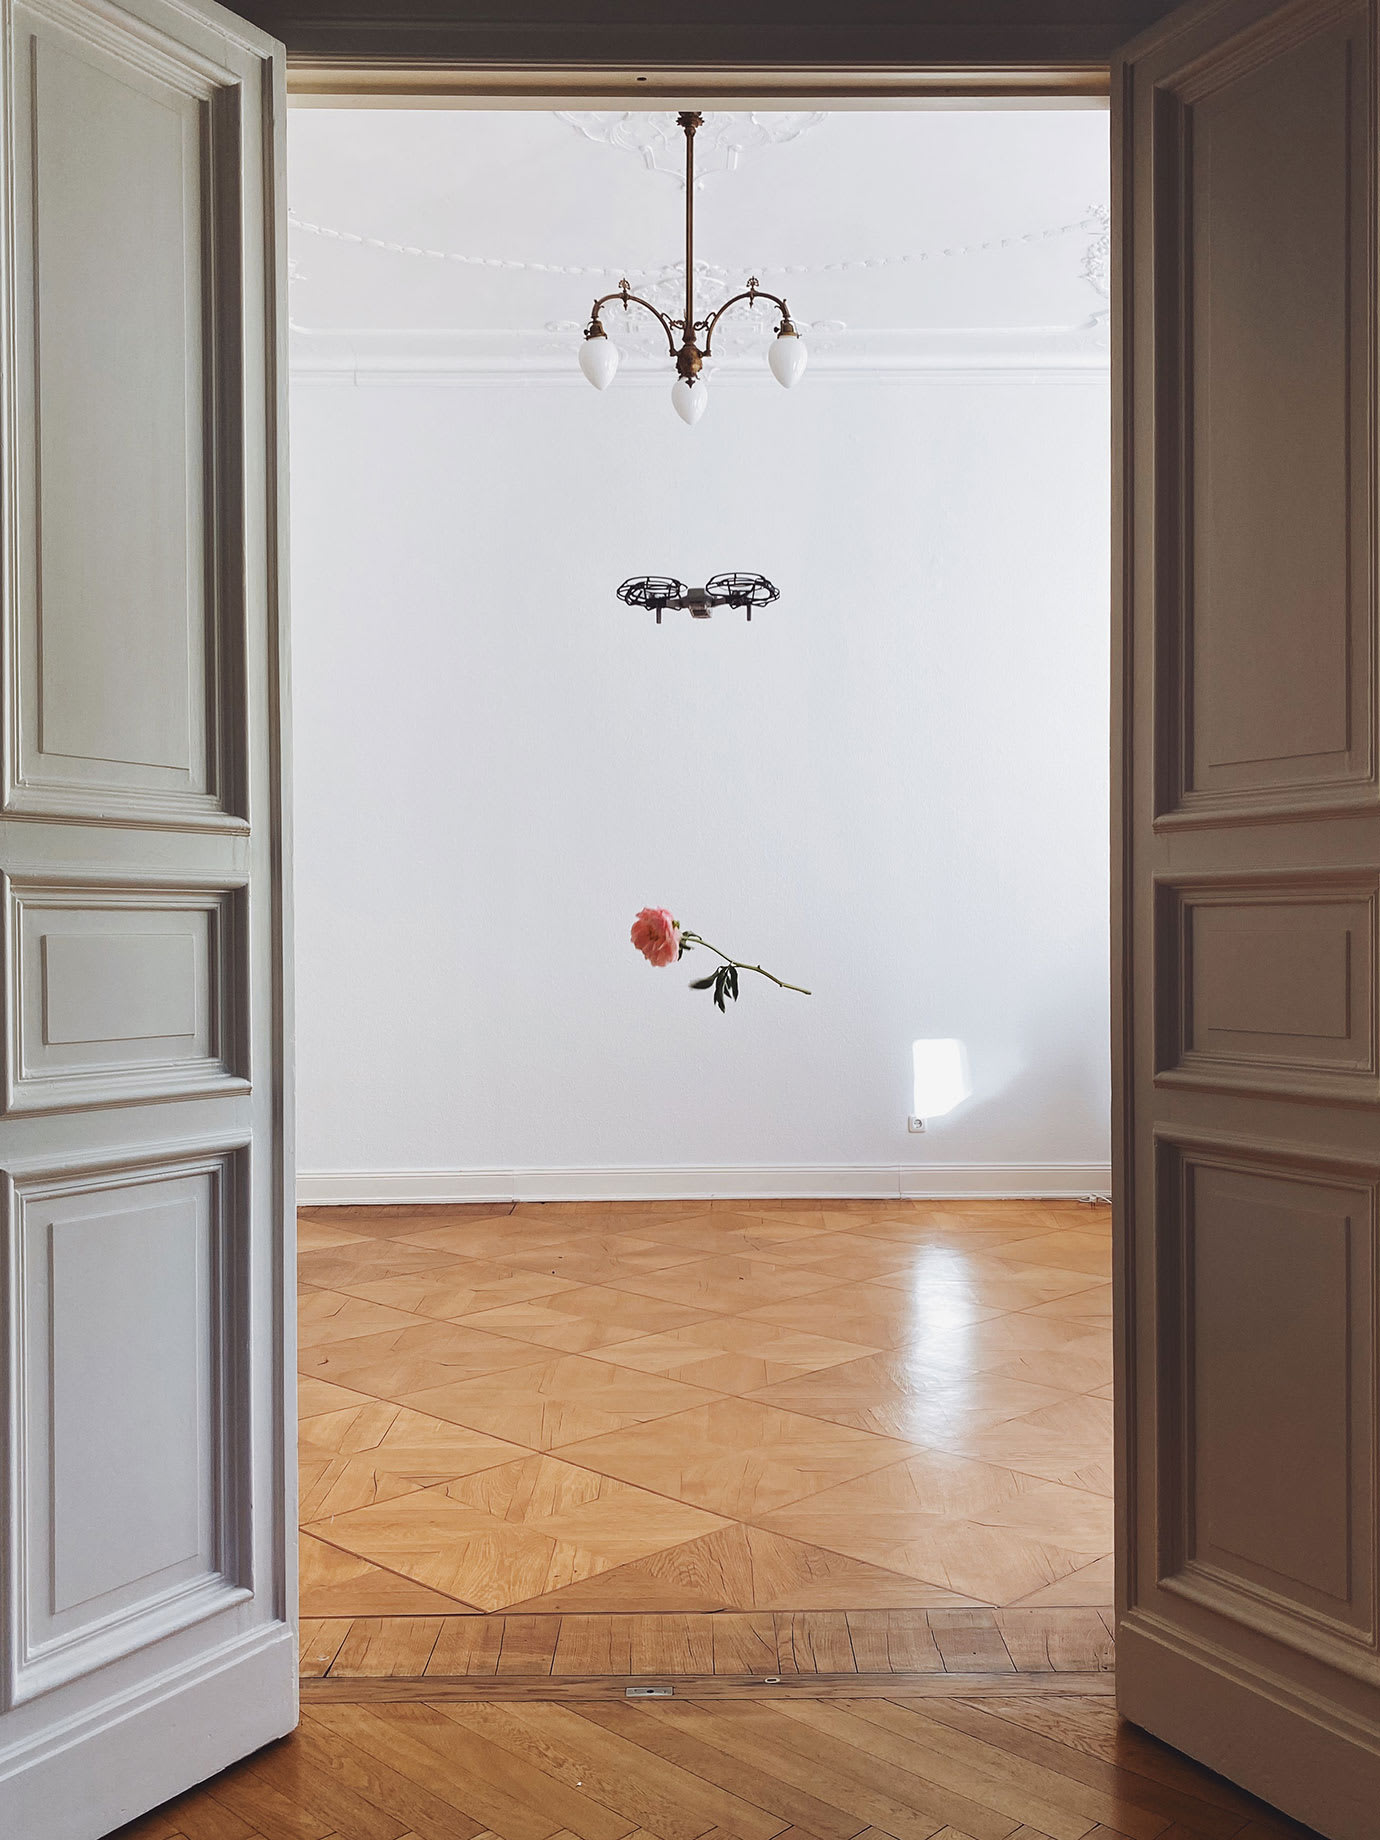 A flower hanging from a drone flying in a hallway.